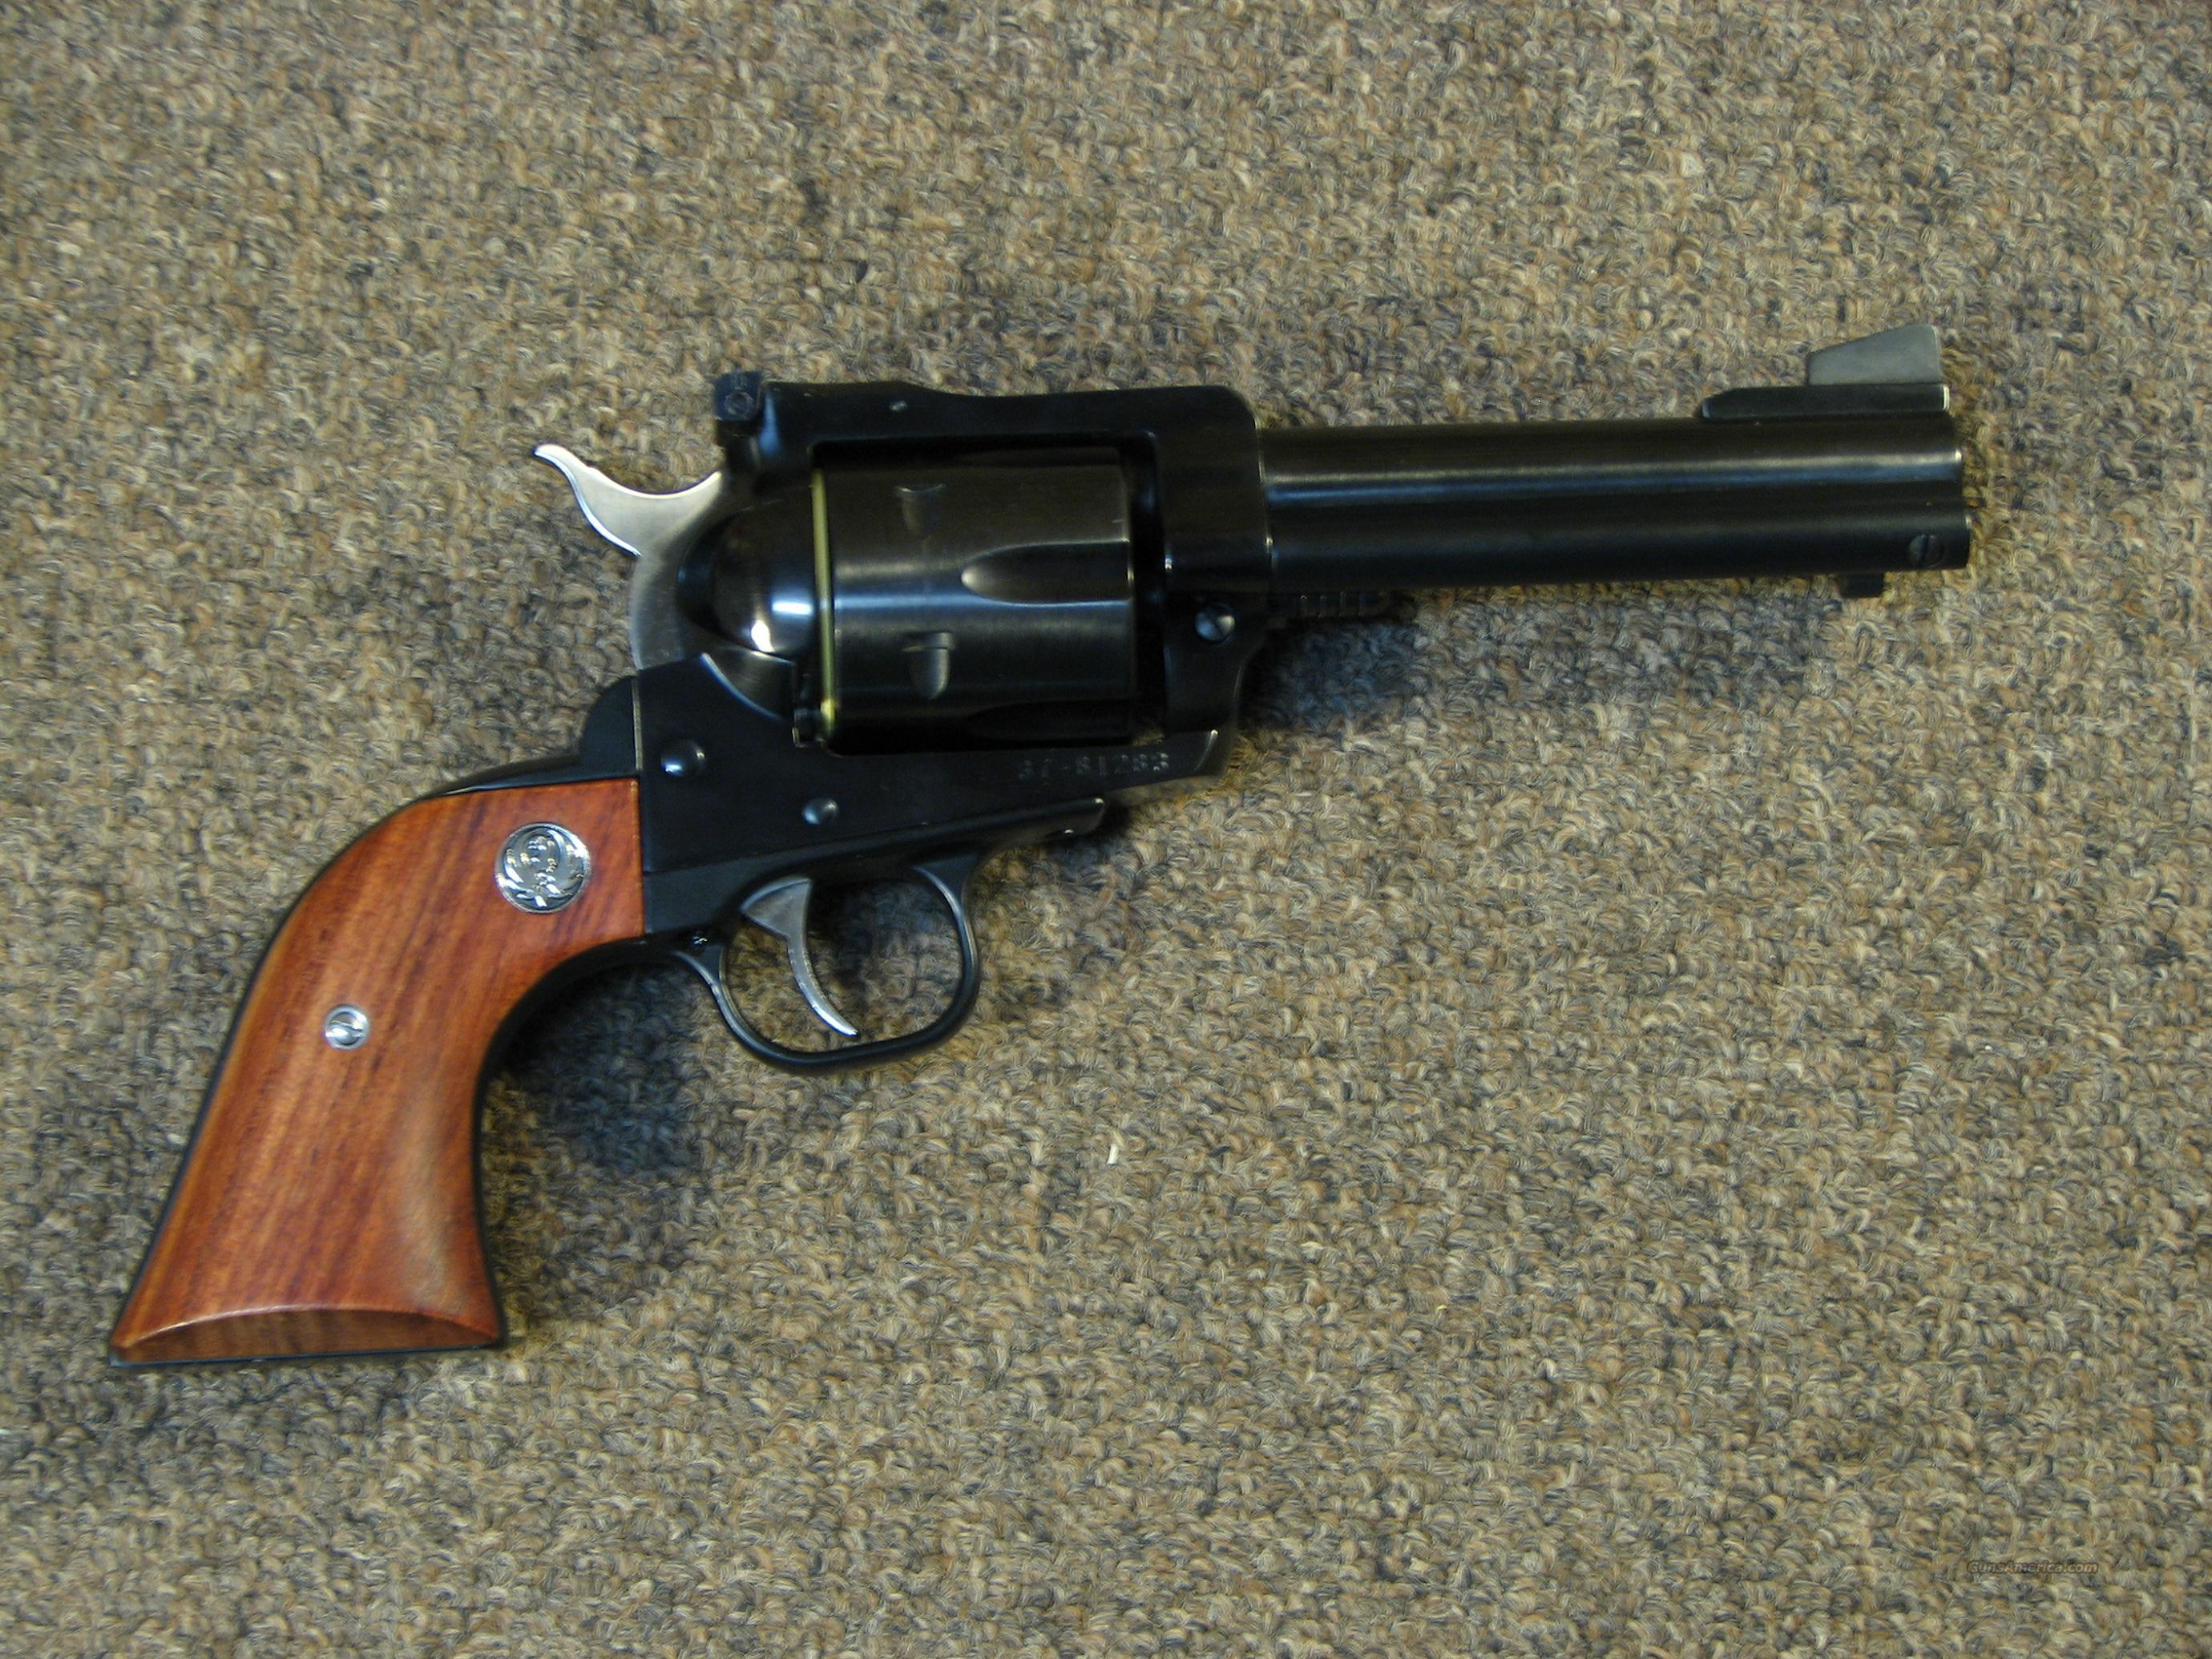 RUGER BLACKHAWK .357/ 9mm CONVERSION - LIKE NEW!  Guns > Pistols > Ruger Single Action Revolvers > Blackhawk Type